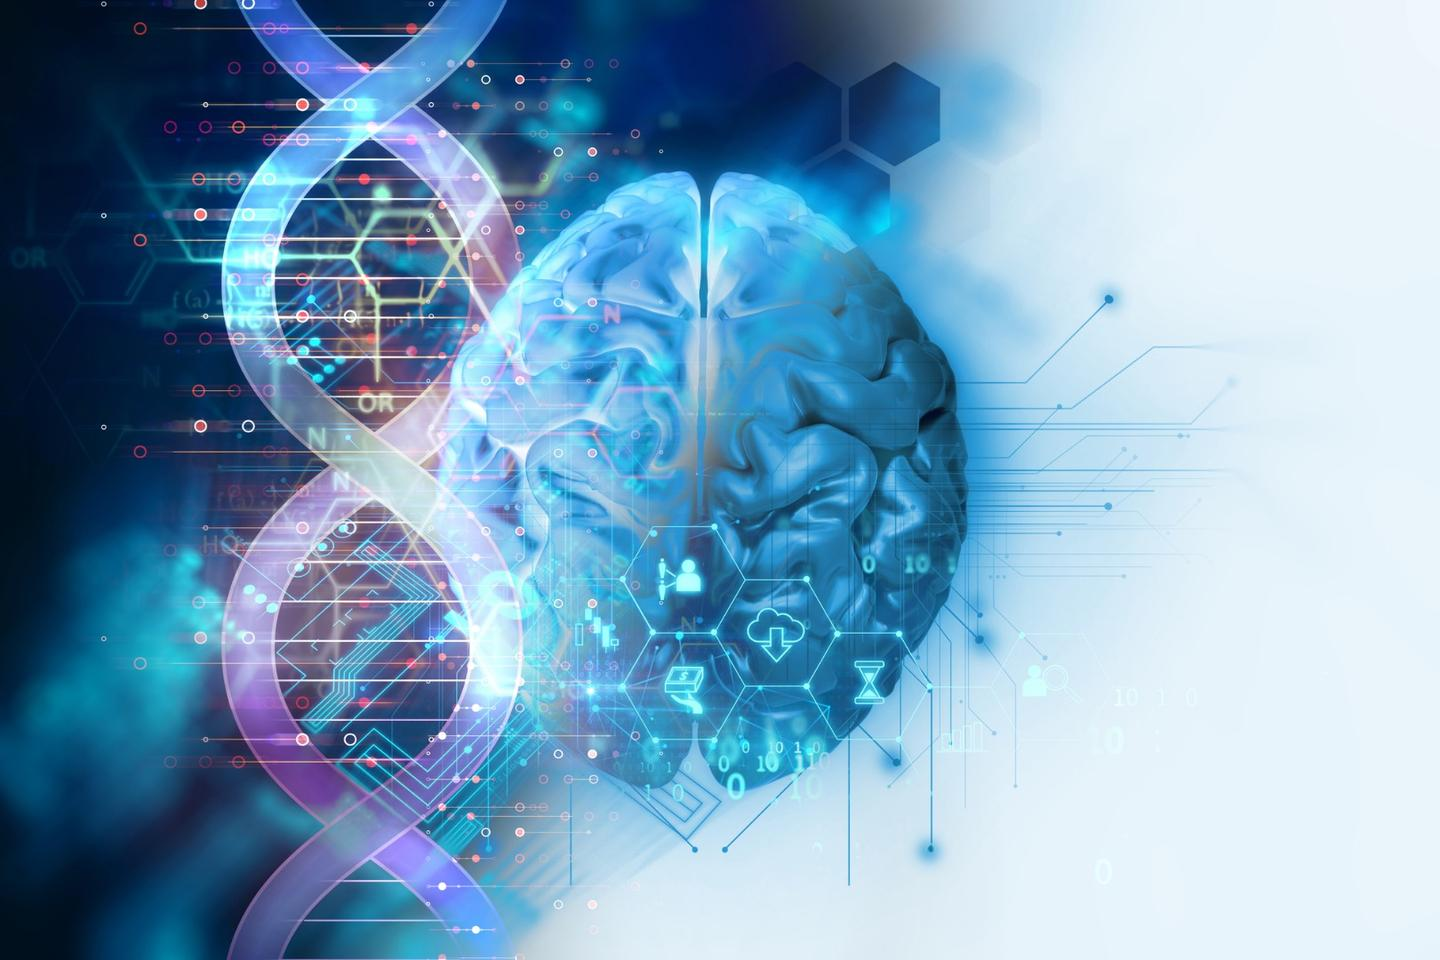 A newstudy suggests an Alzheimer's-related gene could impact cognition at a much younger age thanpreviously thought